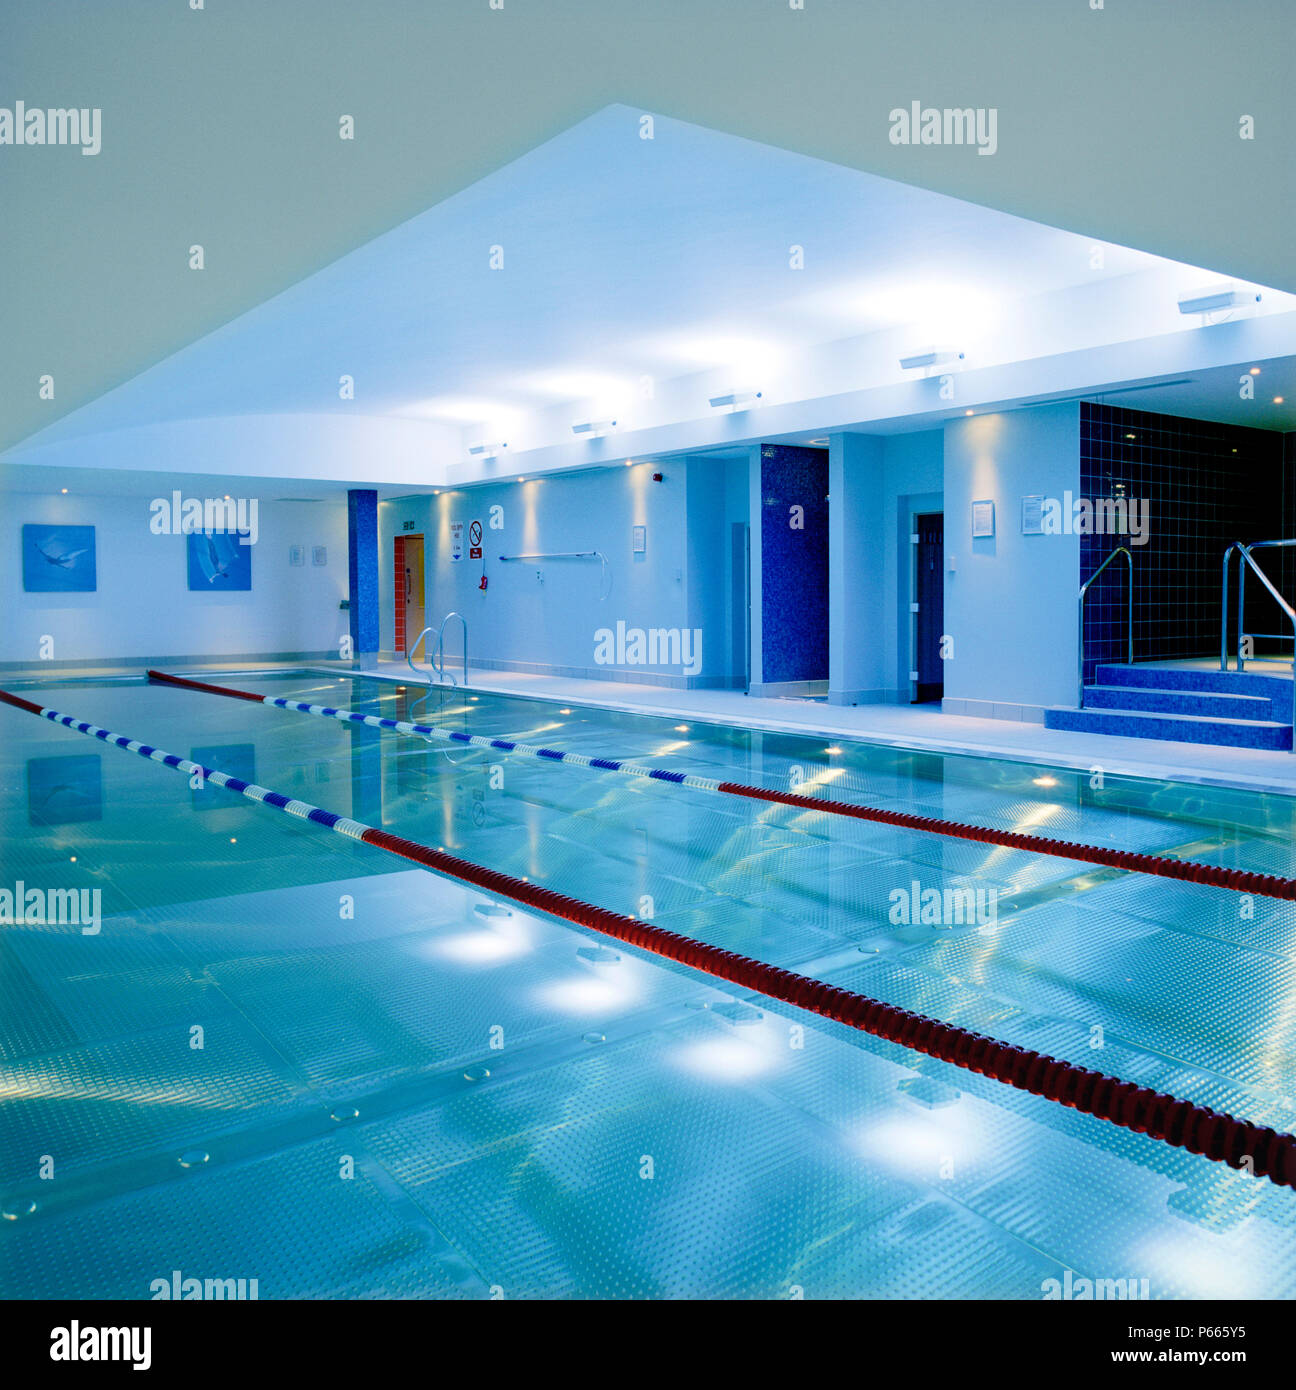 Refurbishment of a gym club, including the swimming pool ...